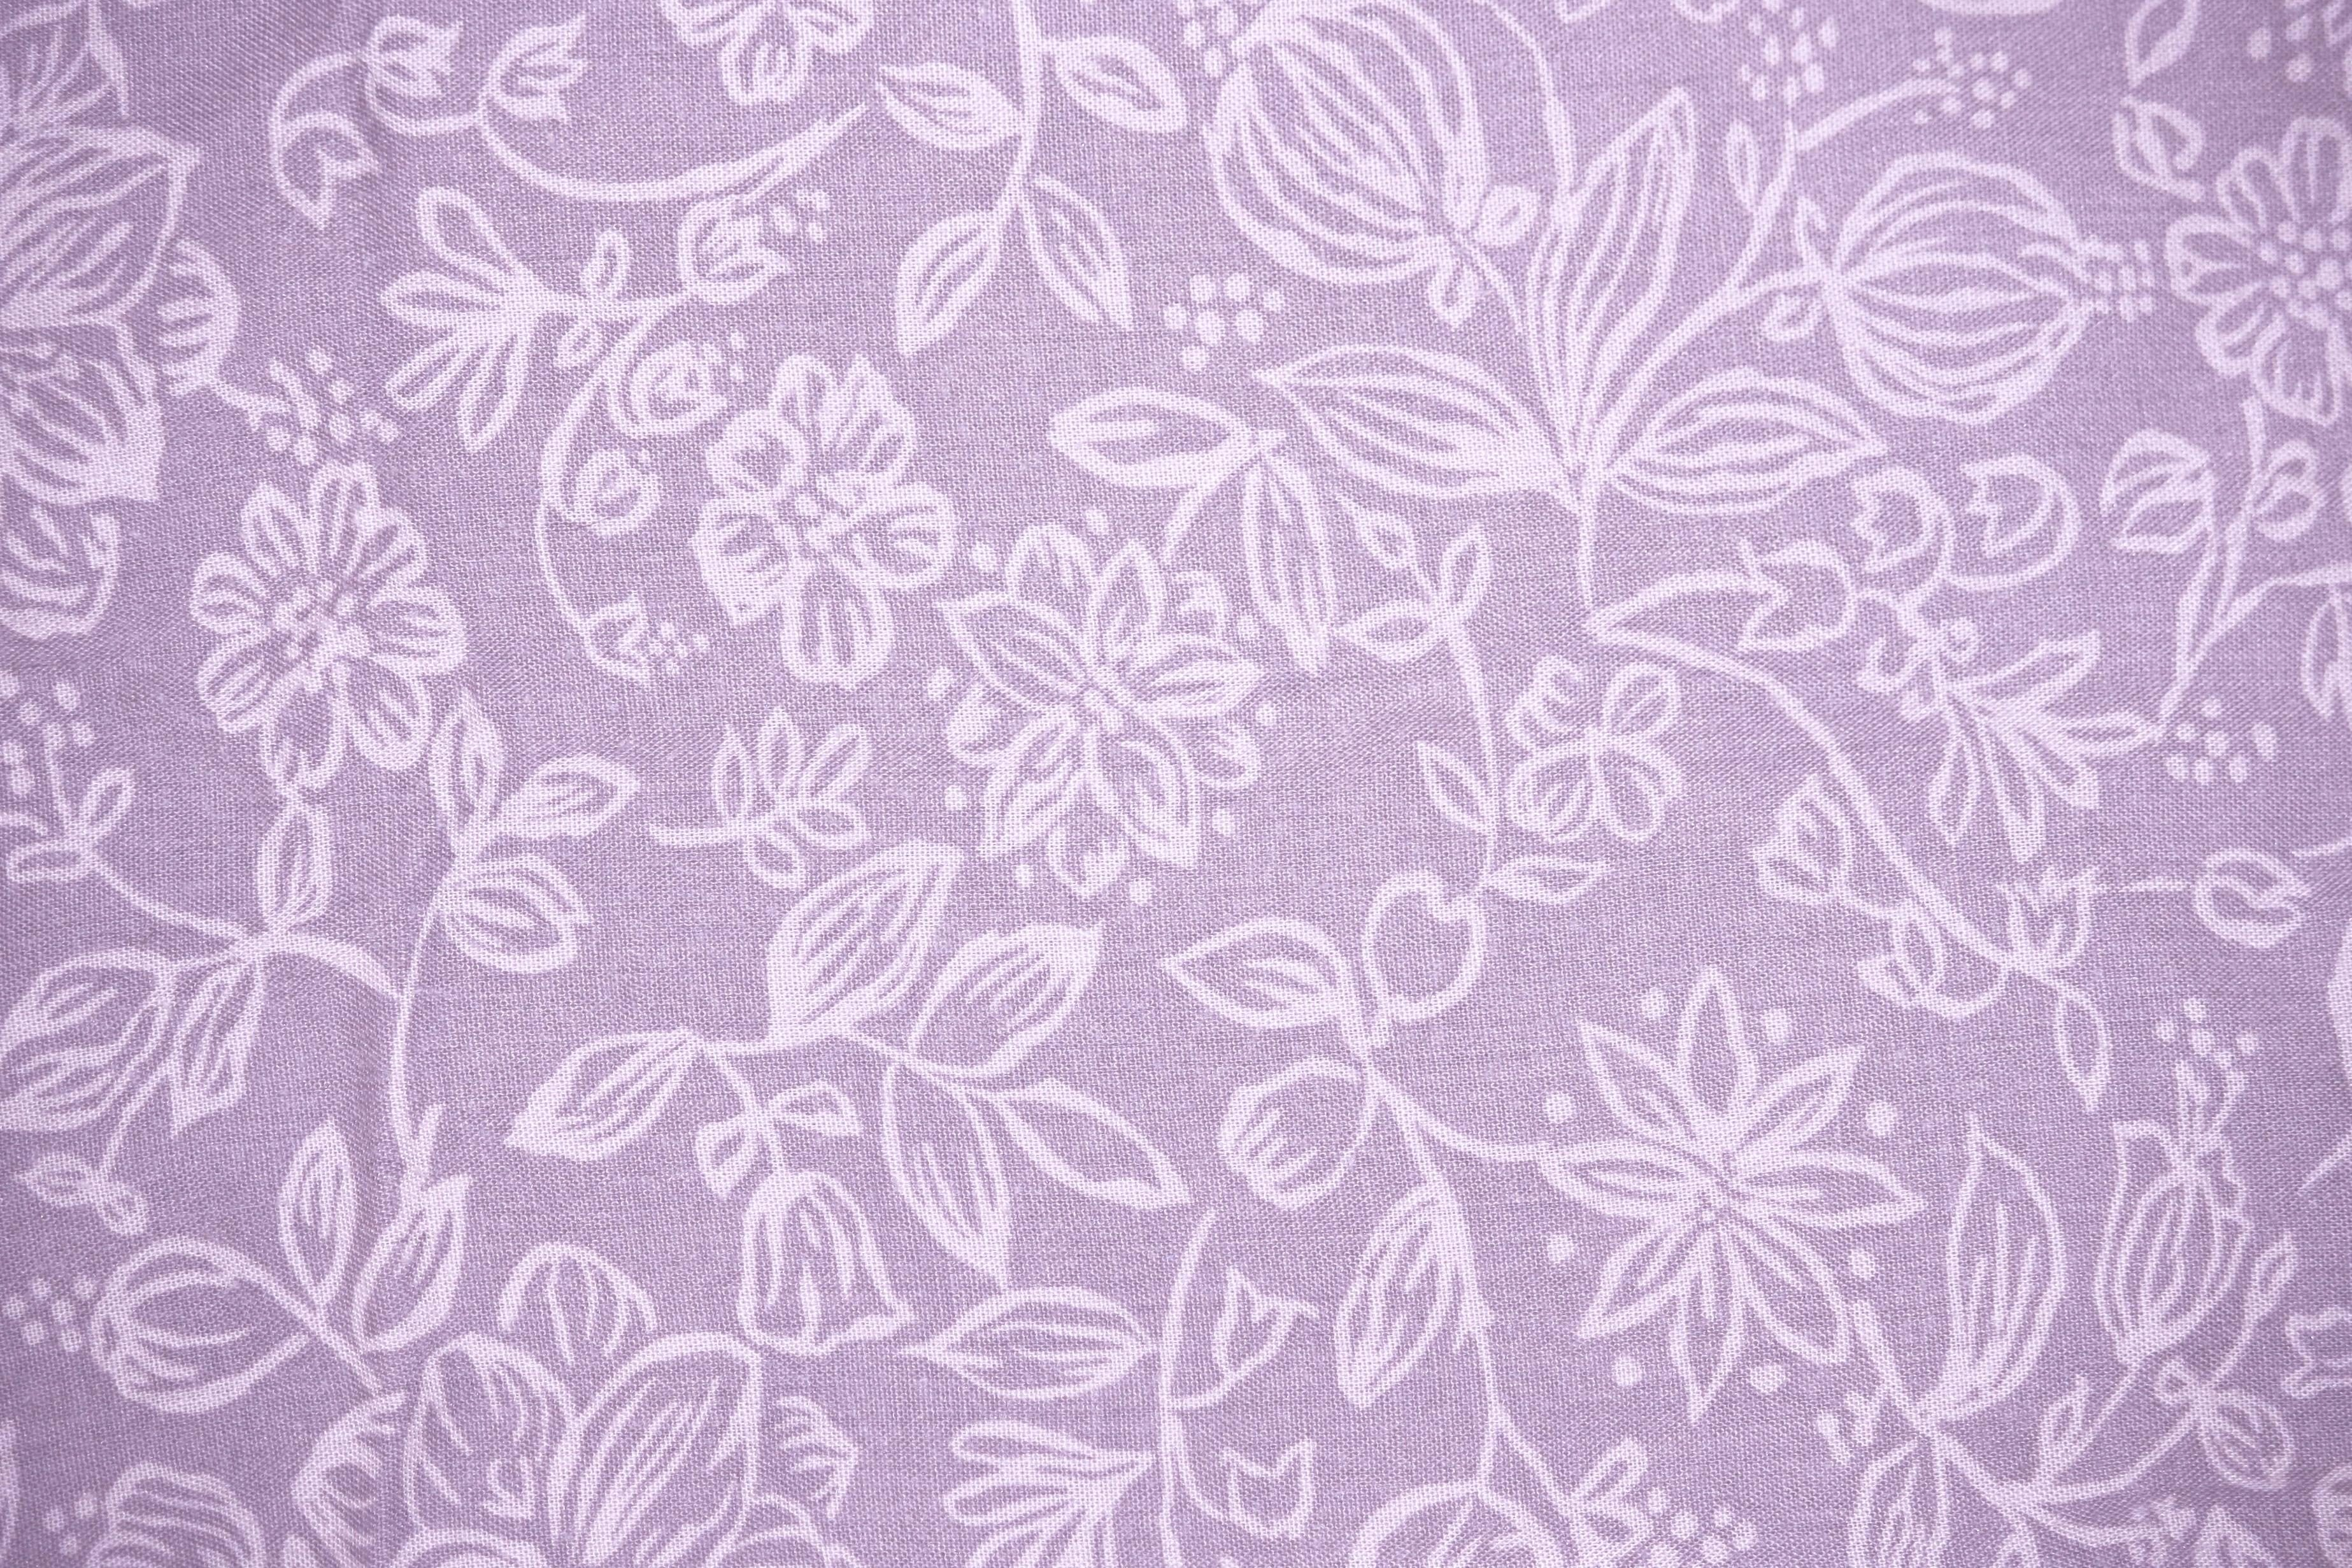 Free picture: dusty, purple colored fabric, floral design